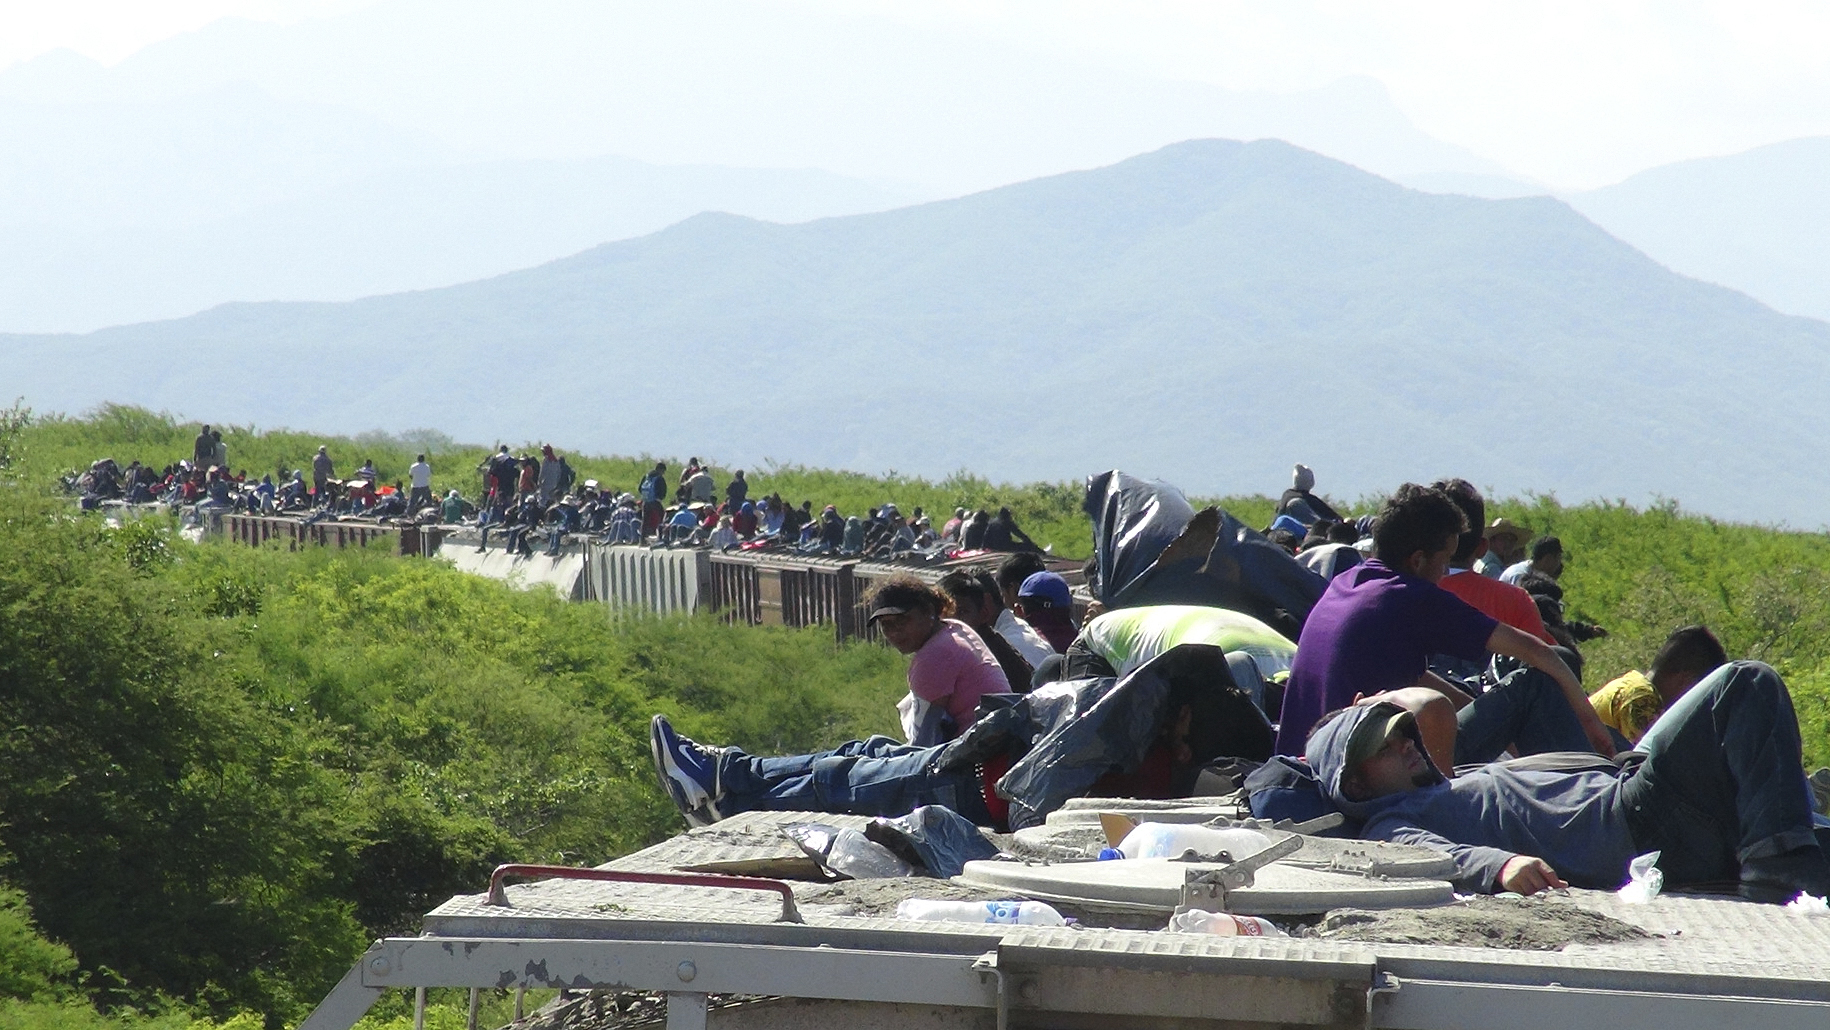 People hoping to reach the U.S. ride atop the wagon of a freight train, known as La Bestia (The Beast) in Ixtepec, in the Mexican state of Oaxaca June 18, 2014. Thousands of young people are hoping to reach the U.S. from their impoverished and violent homes in Central America. In the eight months ended June 15, the U.S. has detained about 52,000 children at the Mexican border, double the figure the year earlier. There's no telling how many have gotten through. Picture taken June 18, 2014. To match FEATURE USA-IMMIGRATION/MEXICO REUTERS/Jose de Jesus Cortes